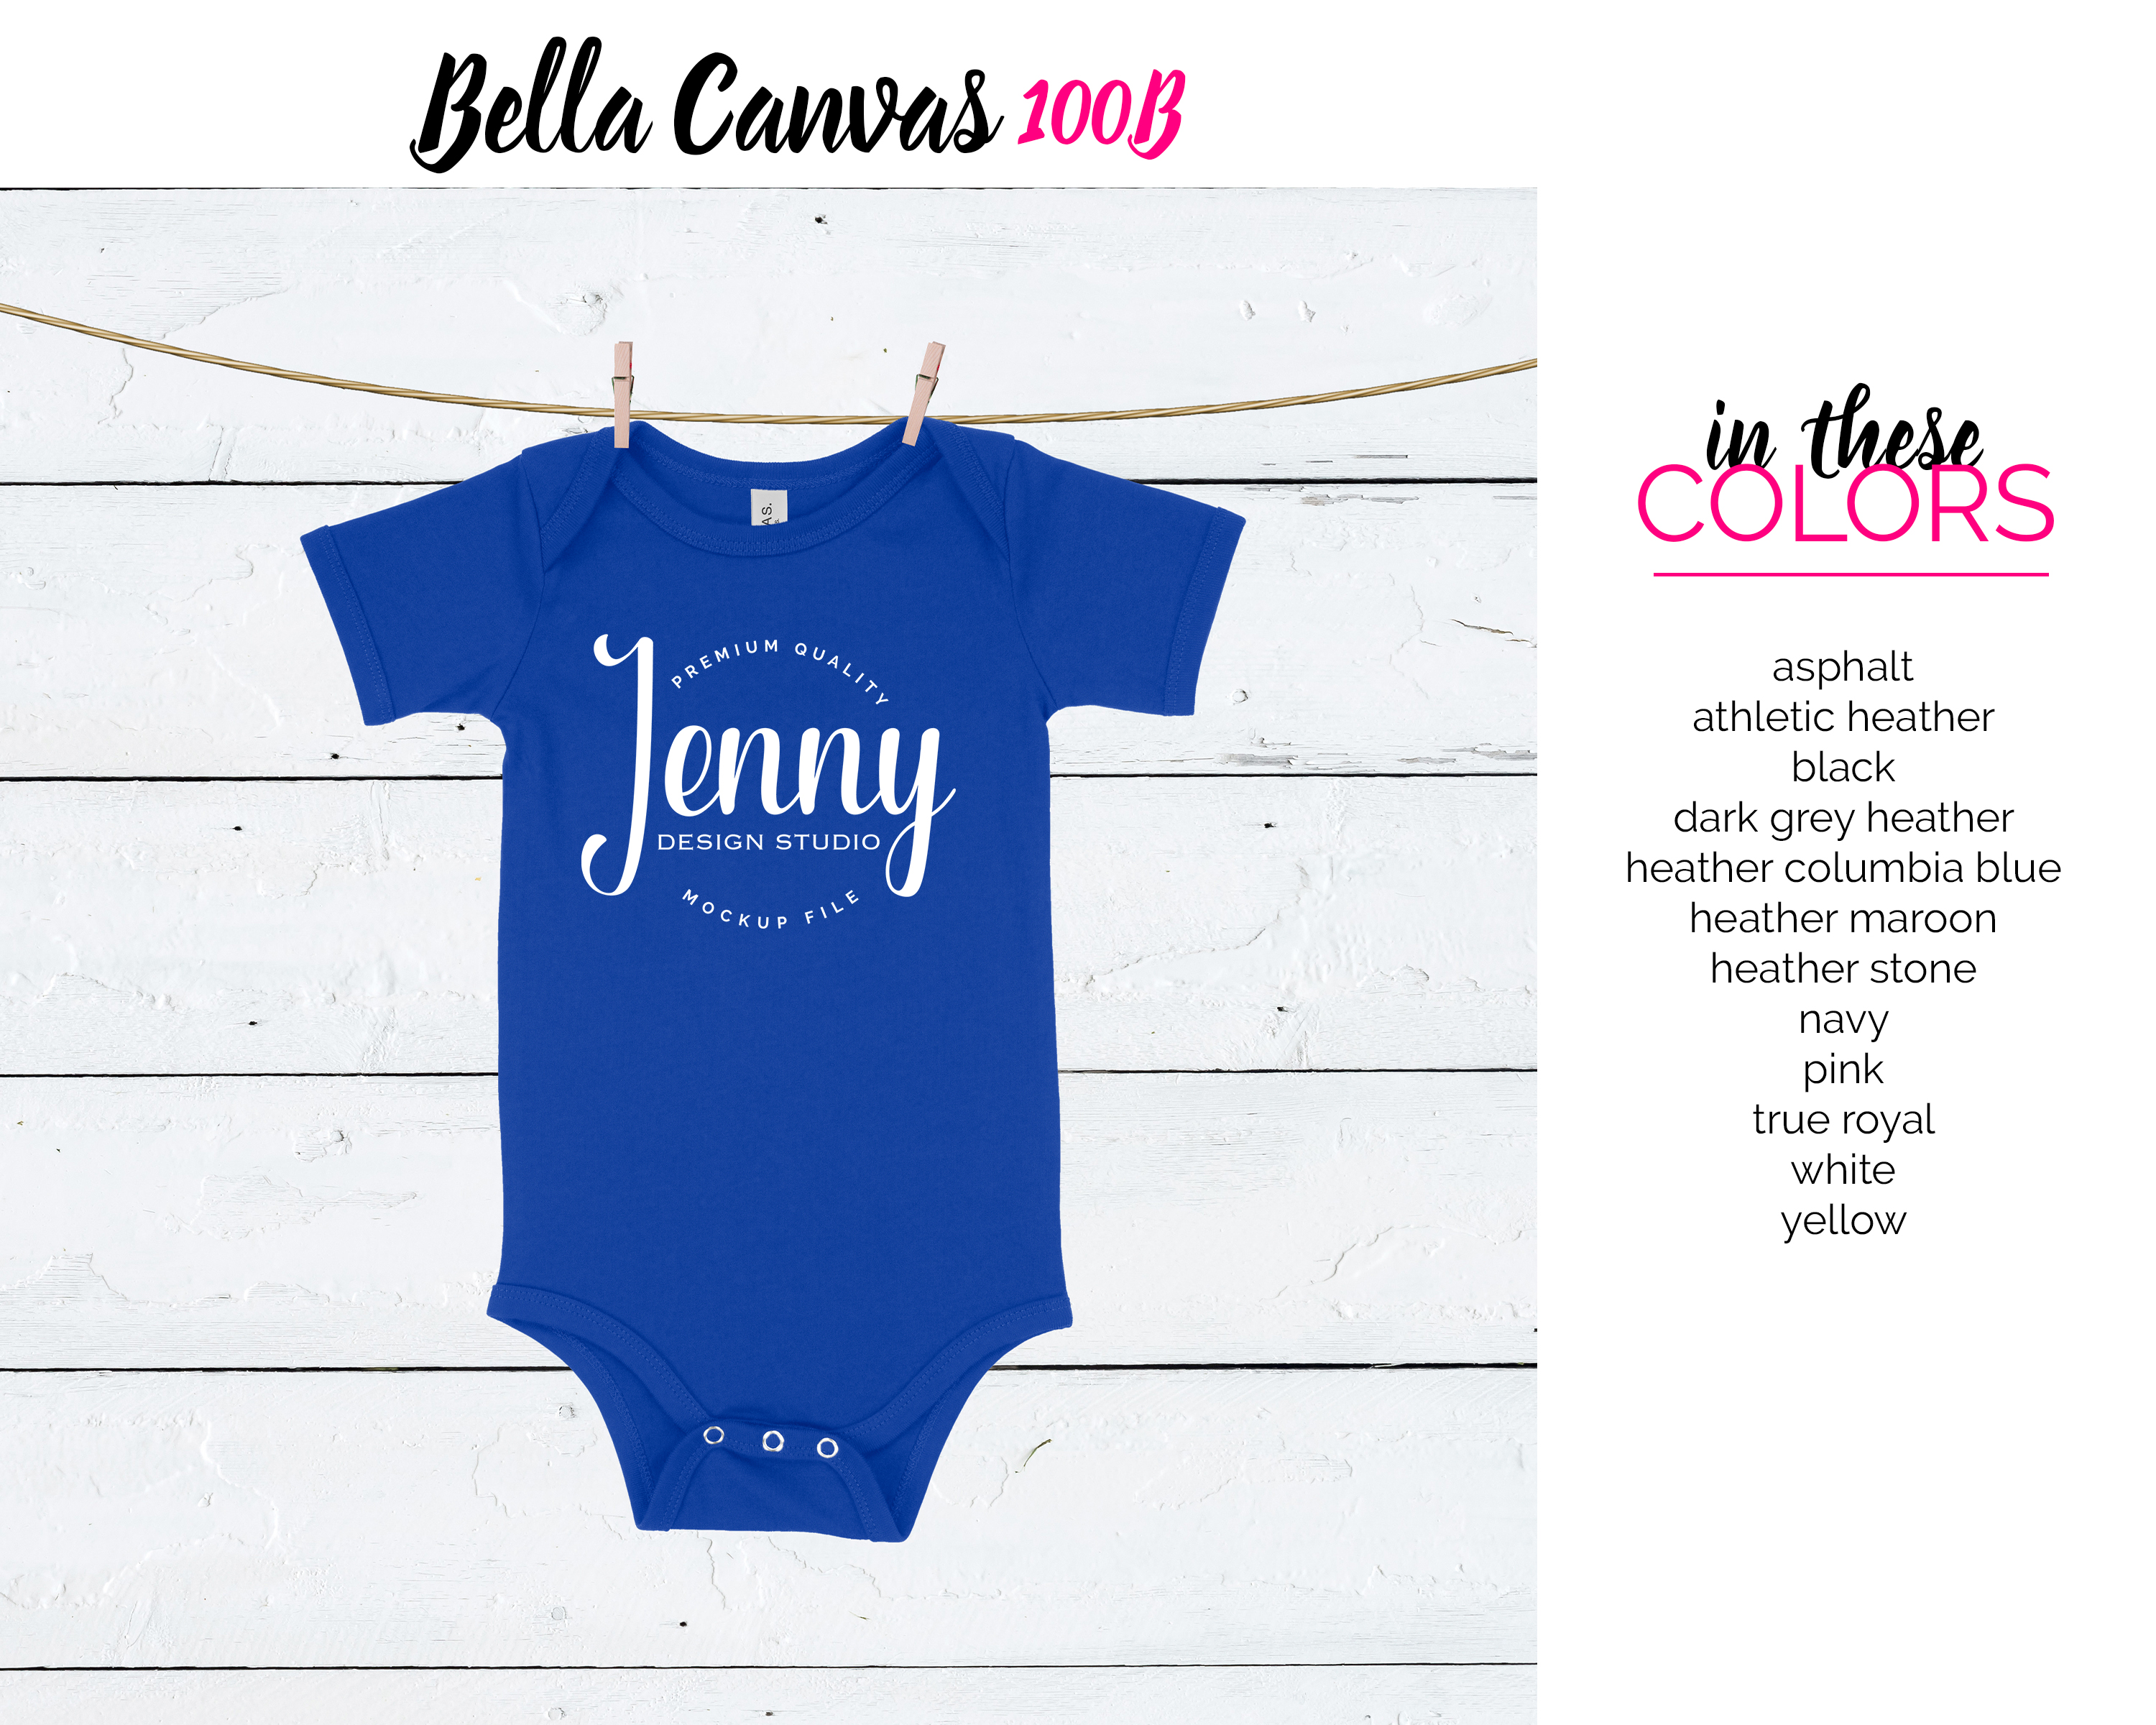 Bella Canvas 100B Unisex Bodysuit Mockup Bundle example image 4